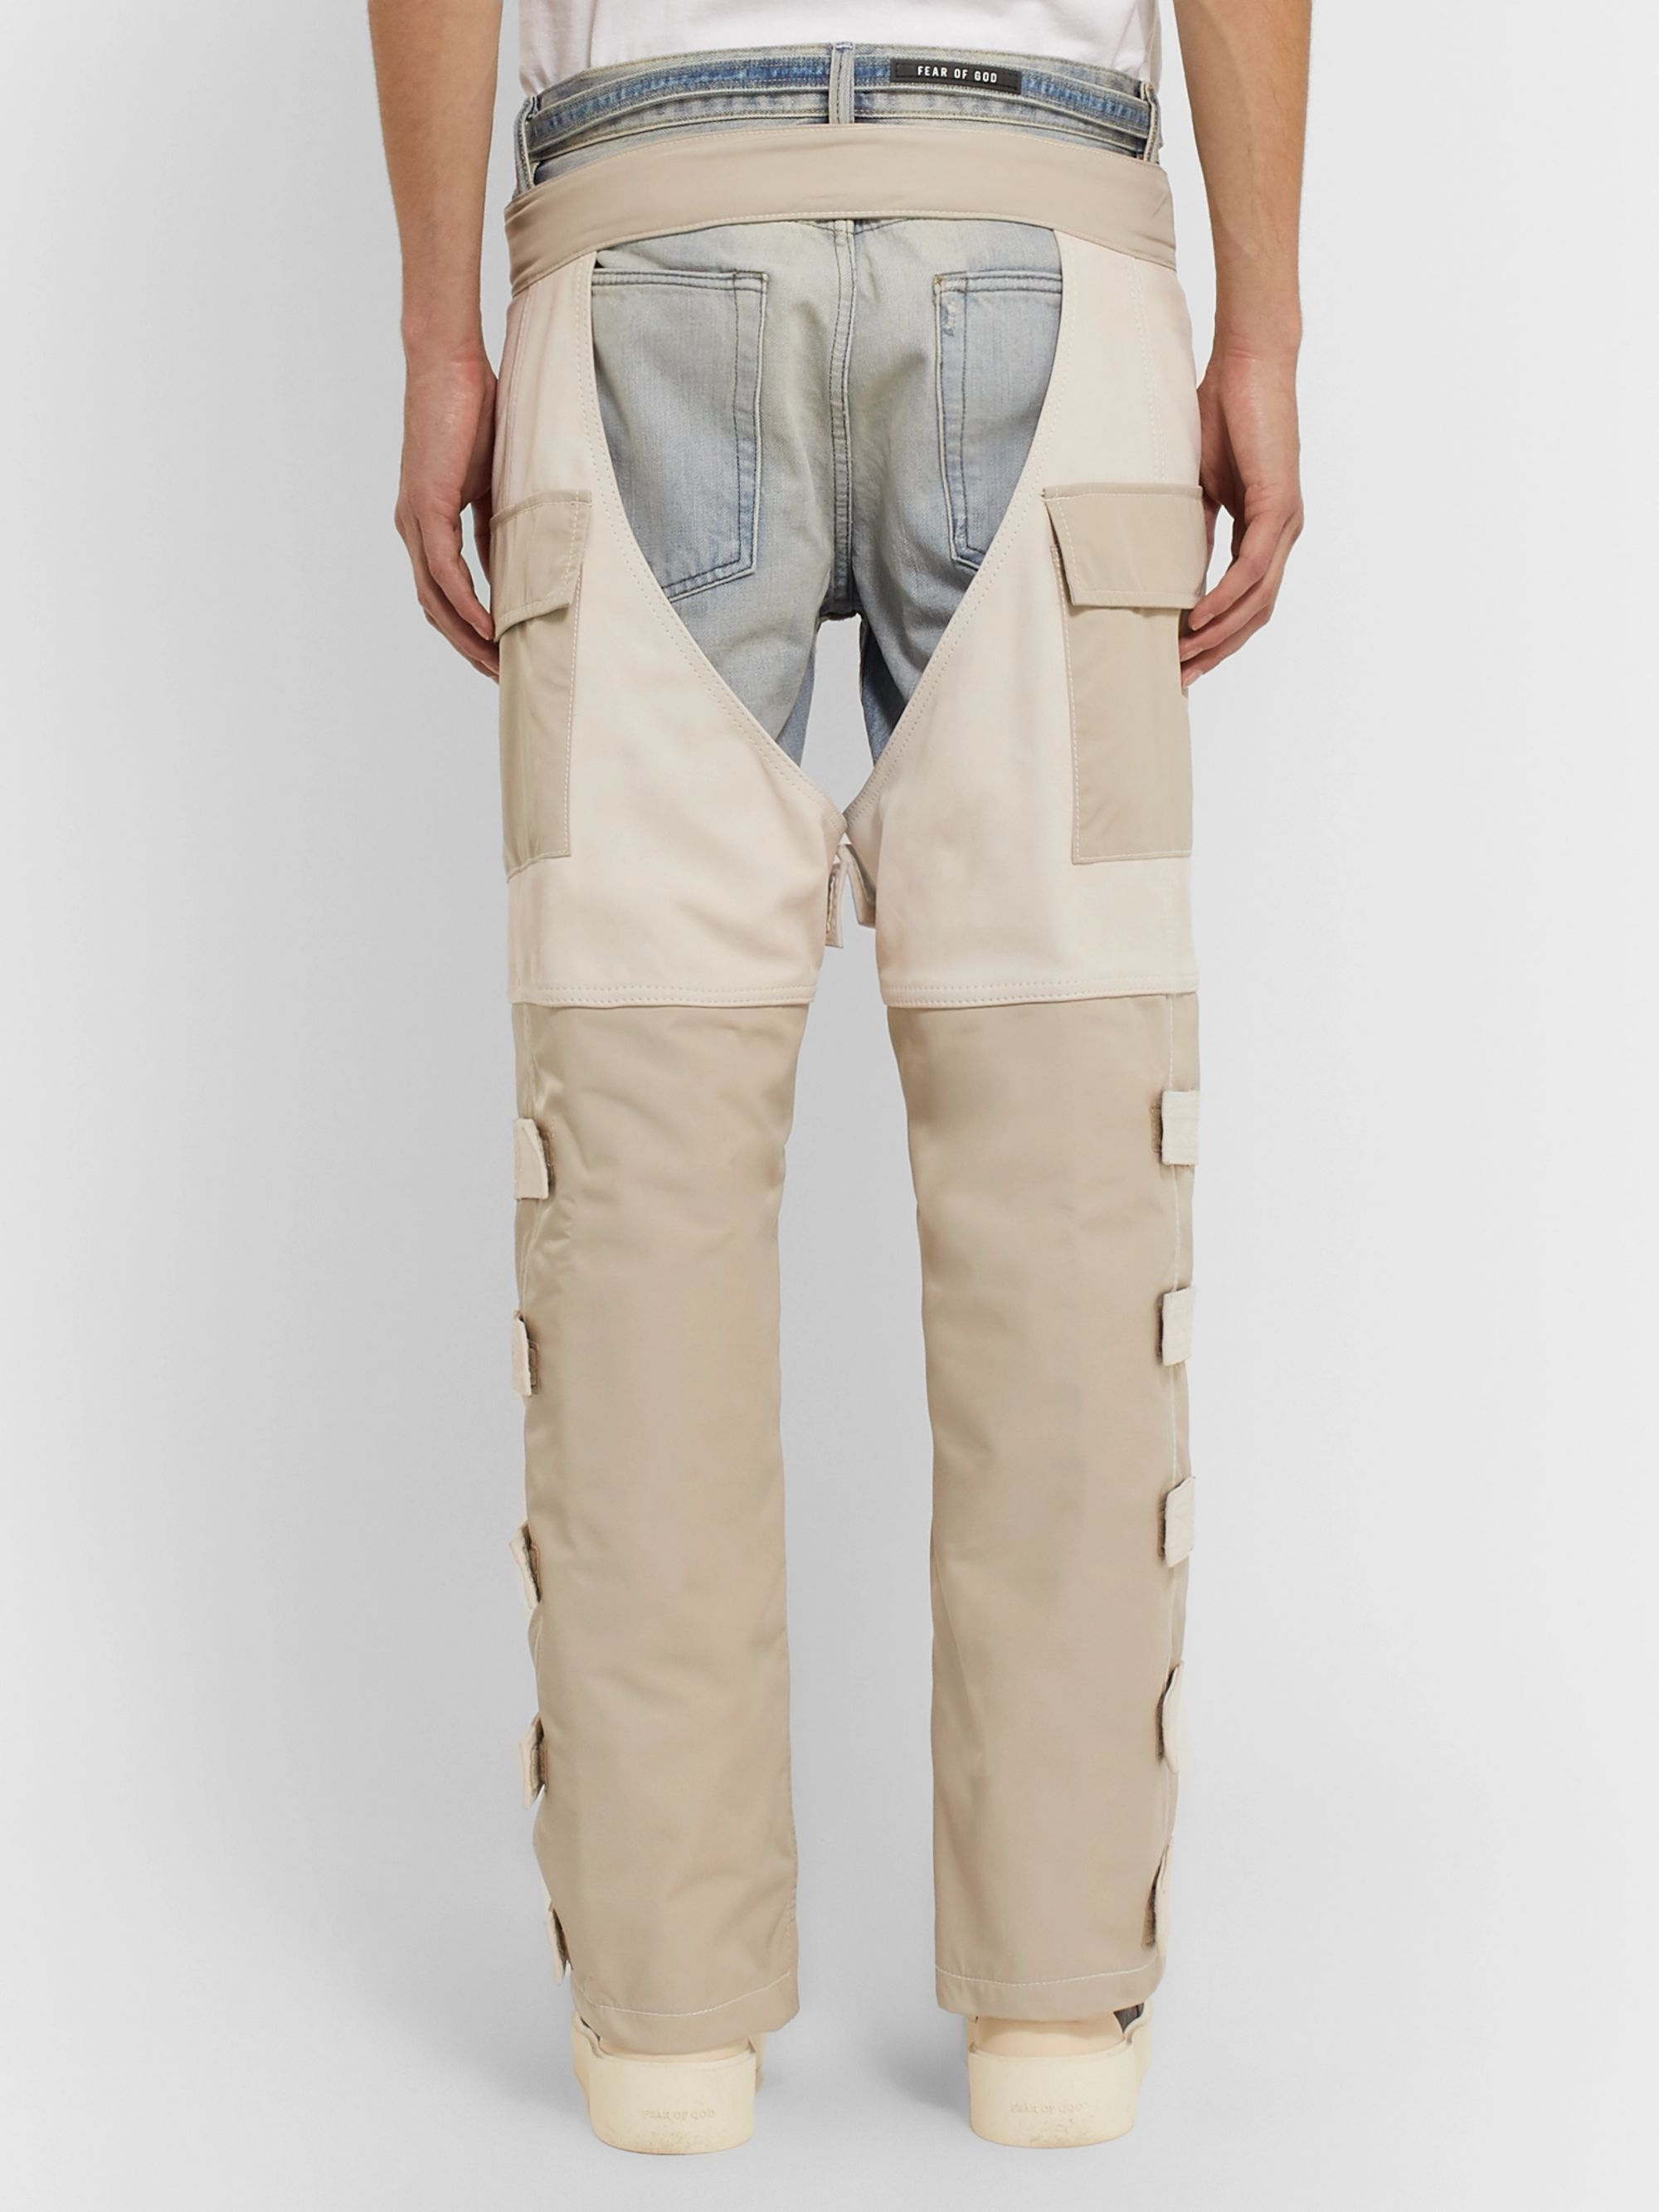 Fear of God Shell-Trimmed Nubuck Chaps